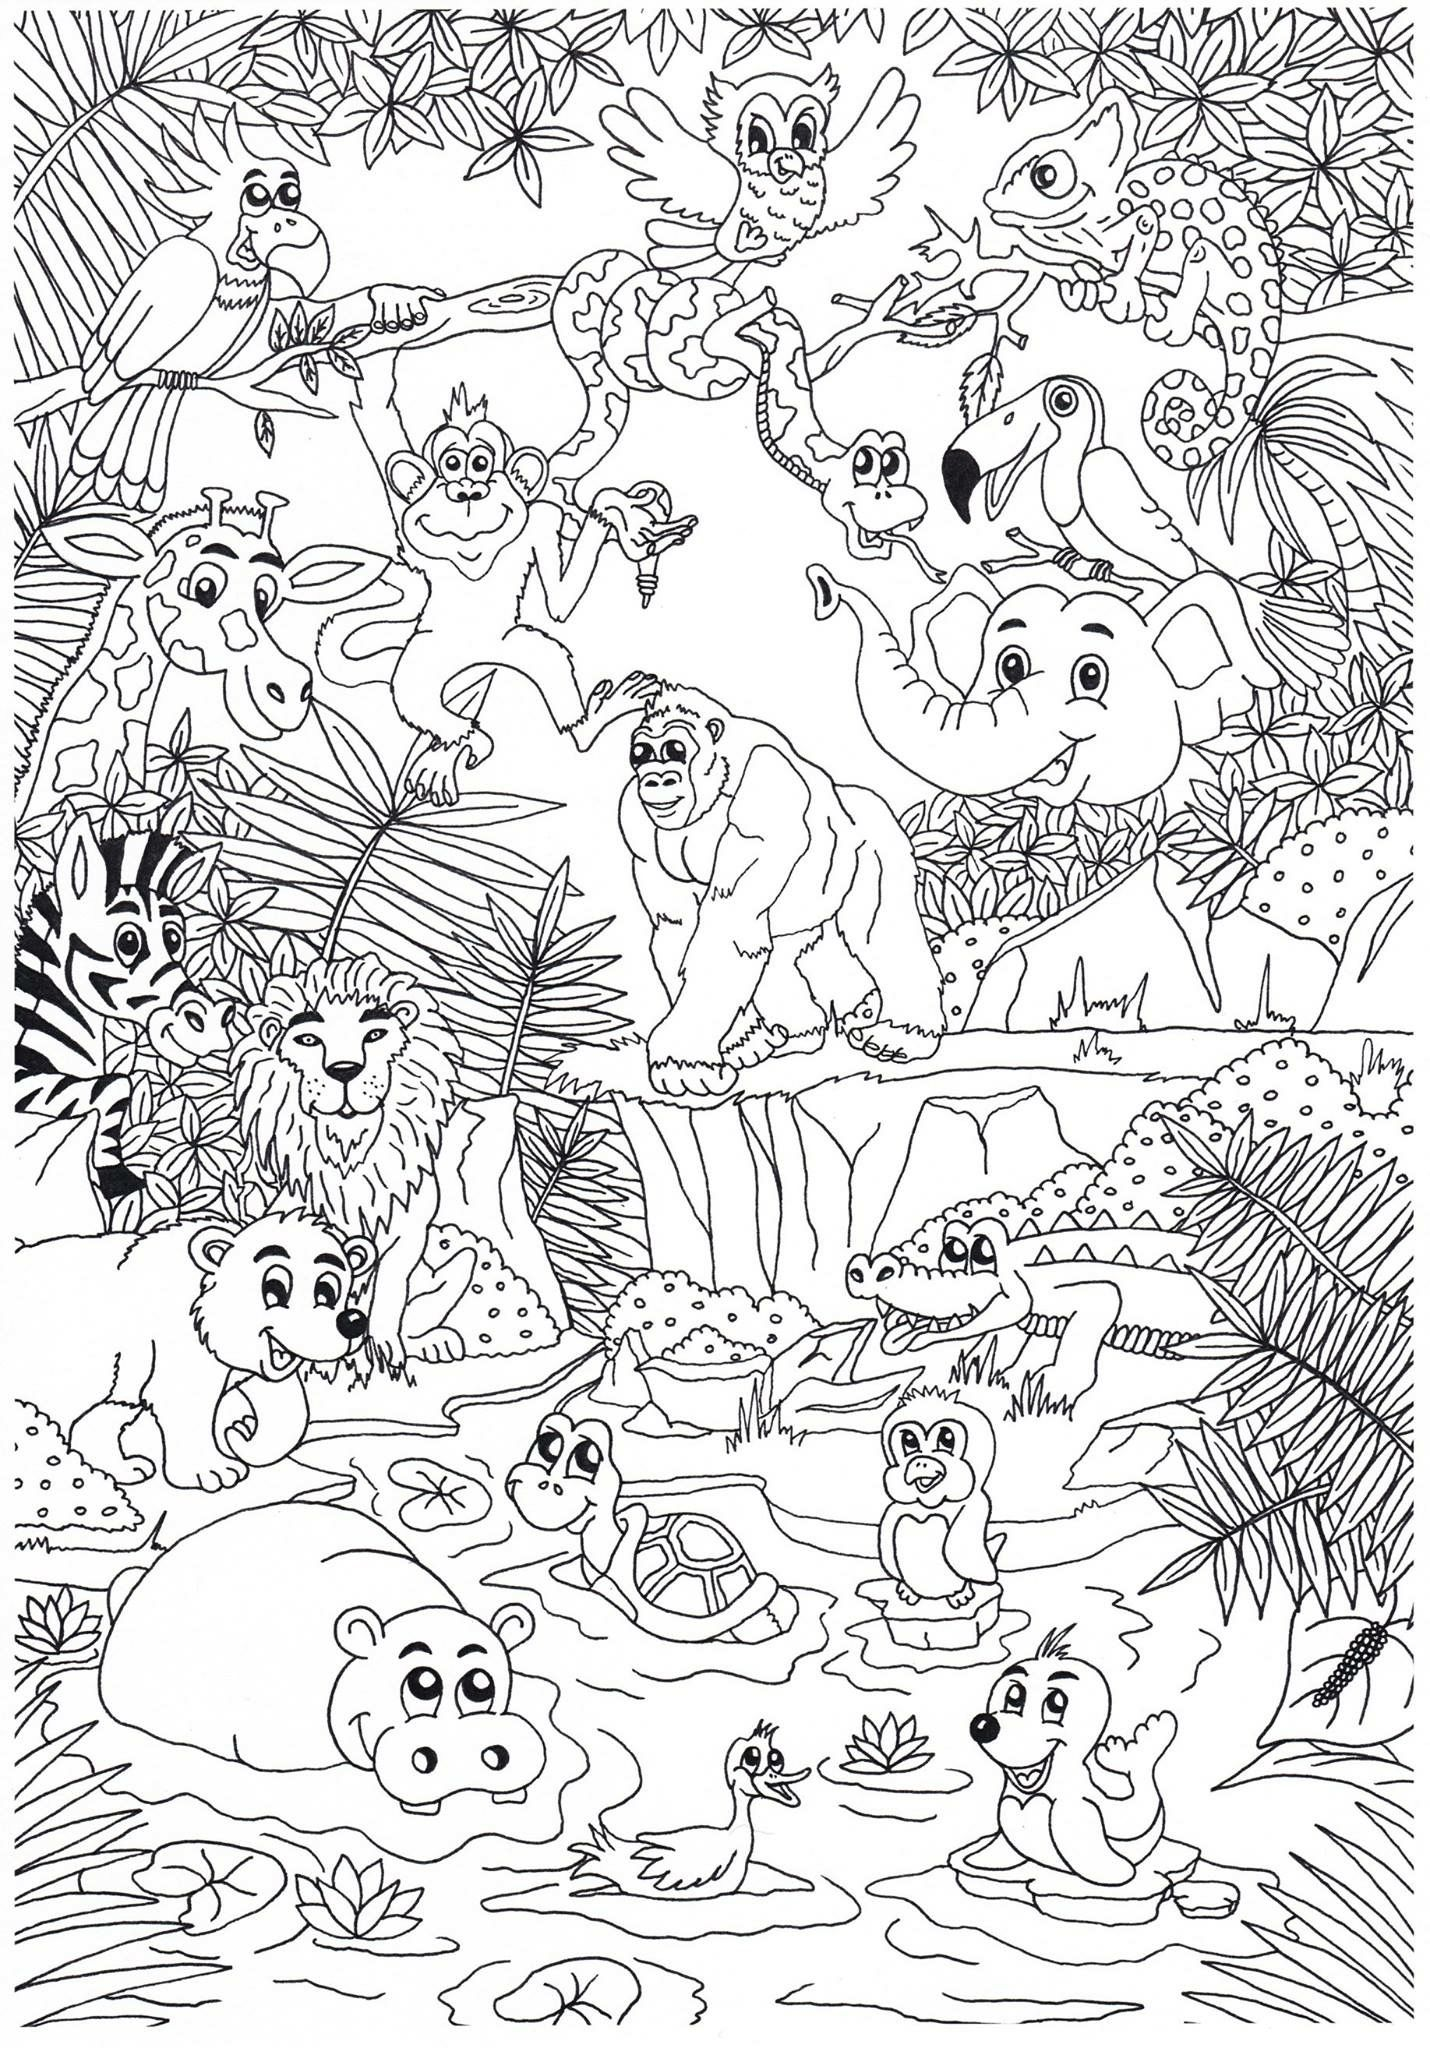 Coloring page (With images) Zoo coloring pages, Jungle